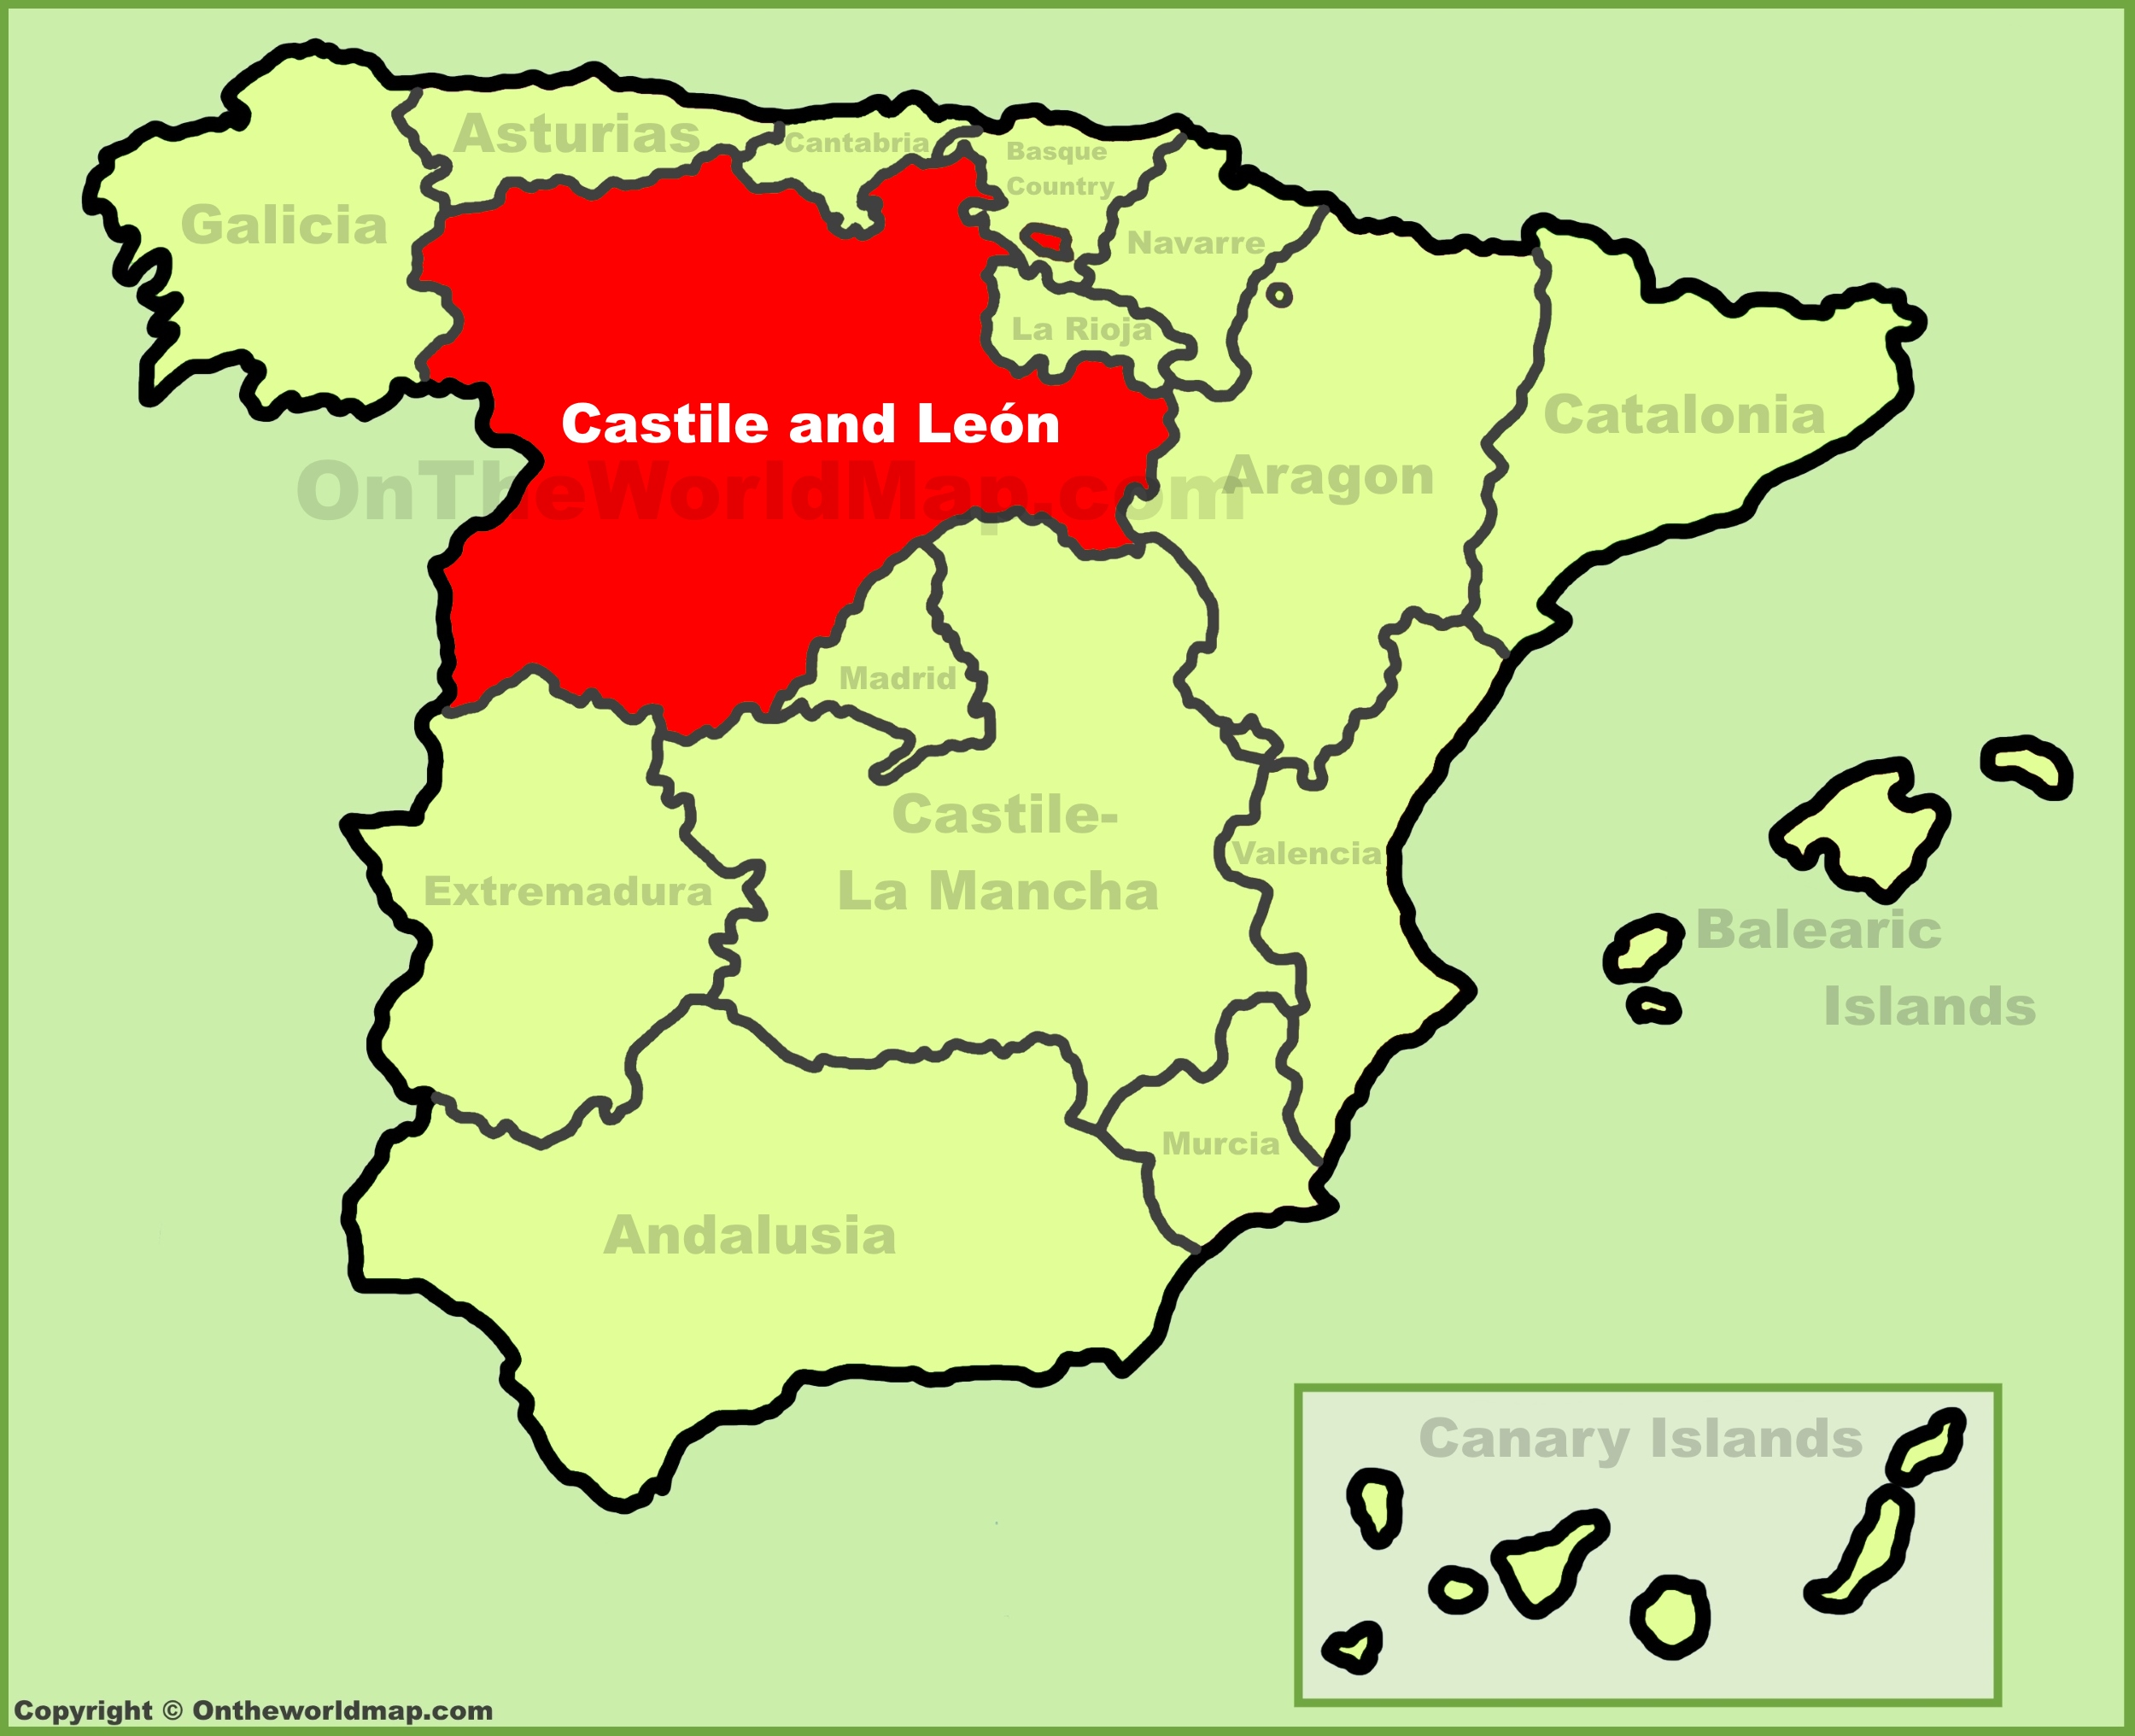 Castile and Len location on the Spain map